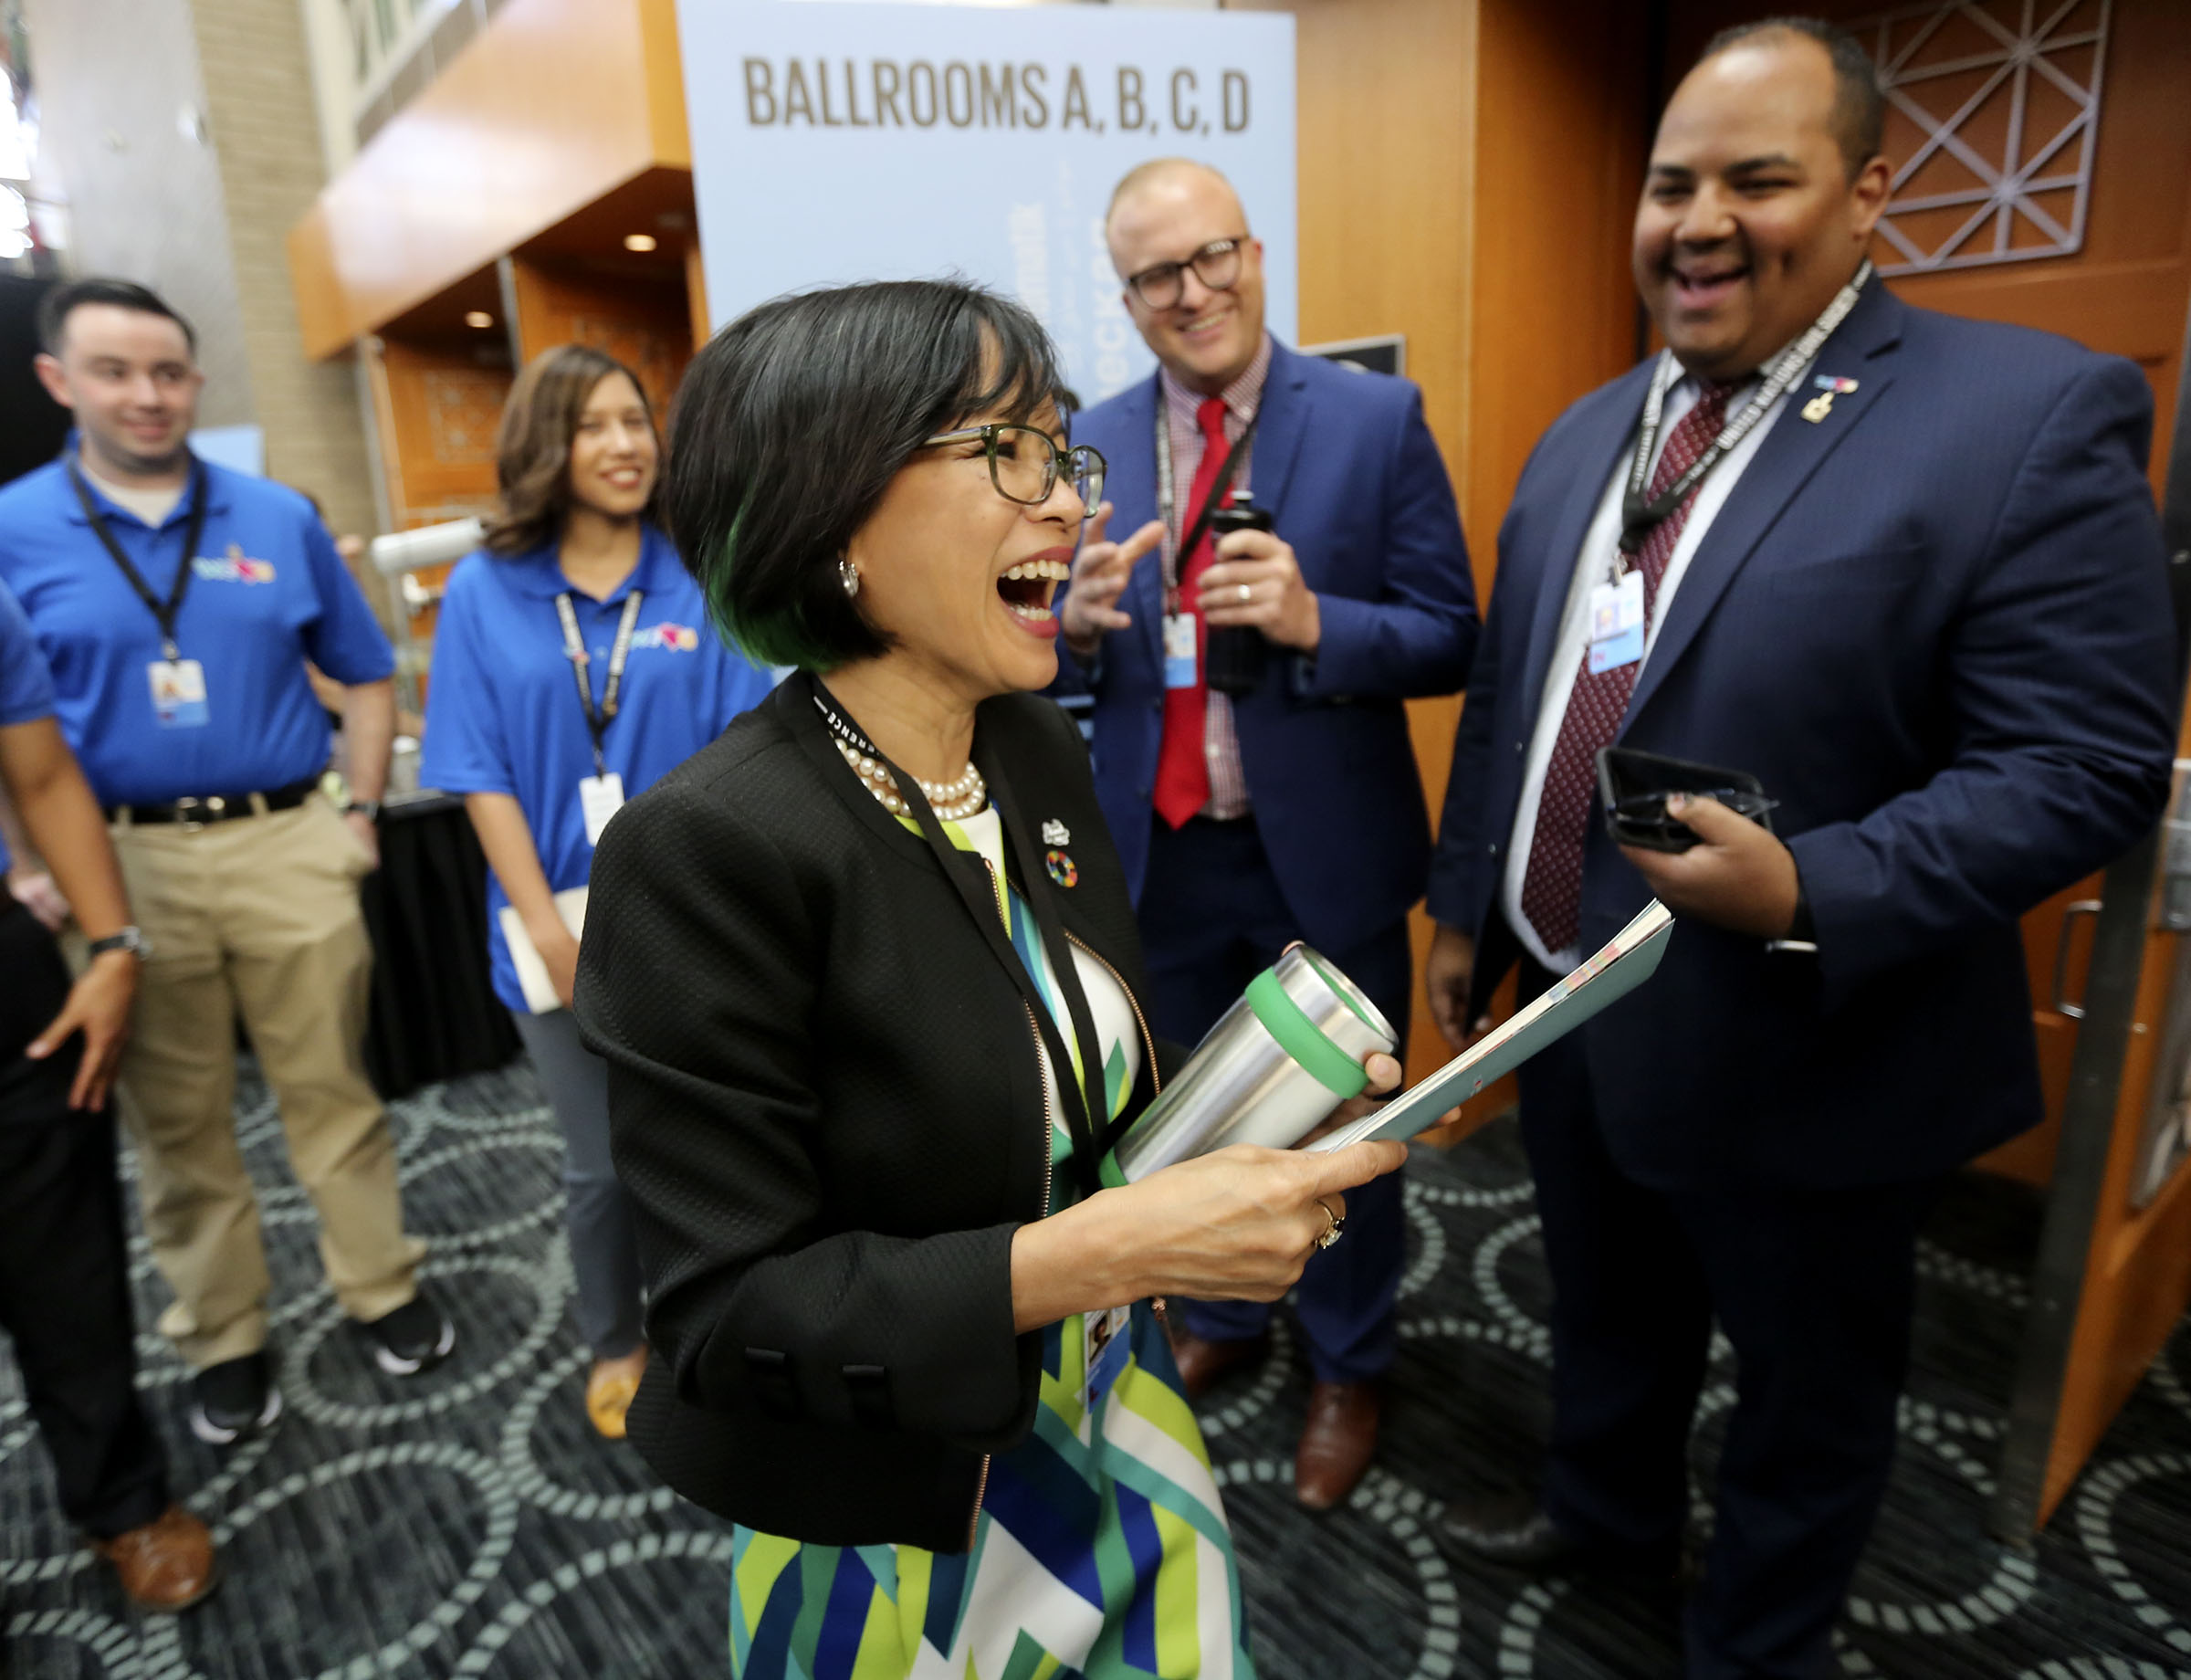 Utah Valley University President Astrid Tuminez meets with attendees after moderating the Building Inclusive Communities Through Education panel at the 68th United Nations Civil Society Conference at the Salt Palace Convention Center in Salt Lake City on Monday, Aug. 26, 2019.